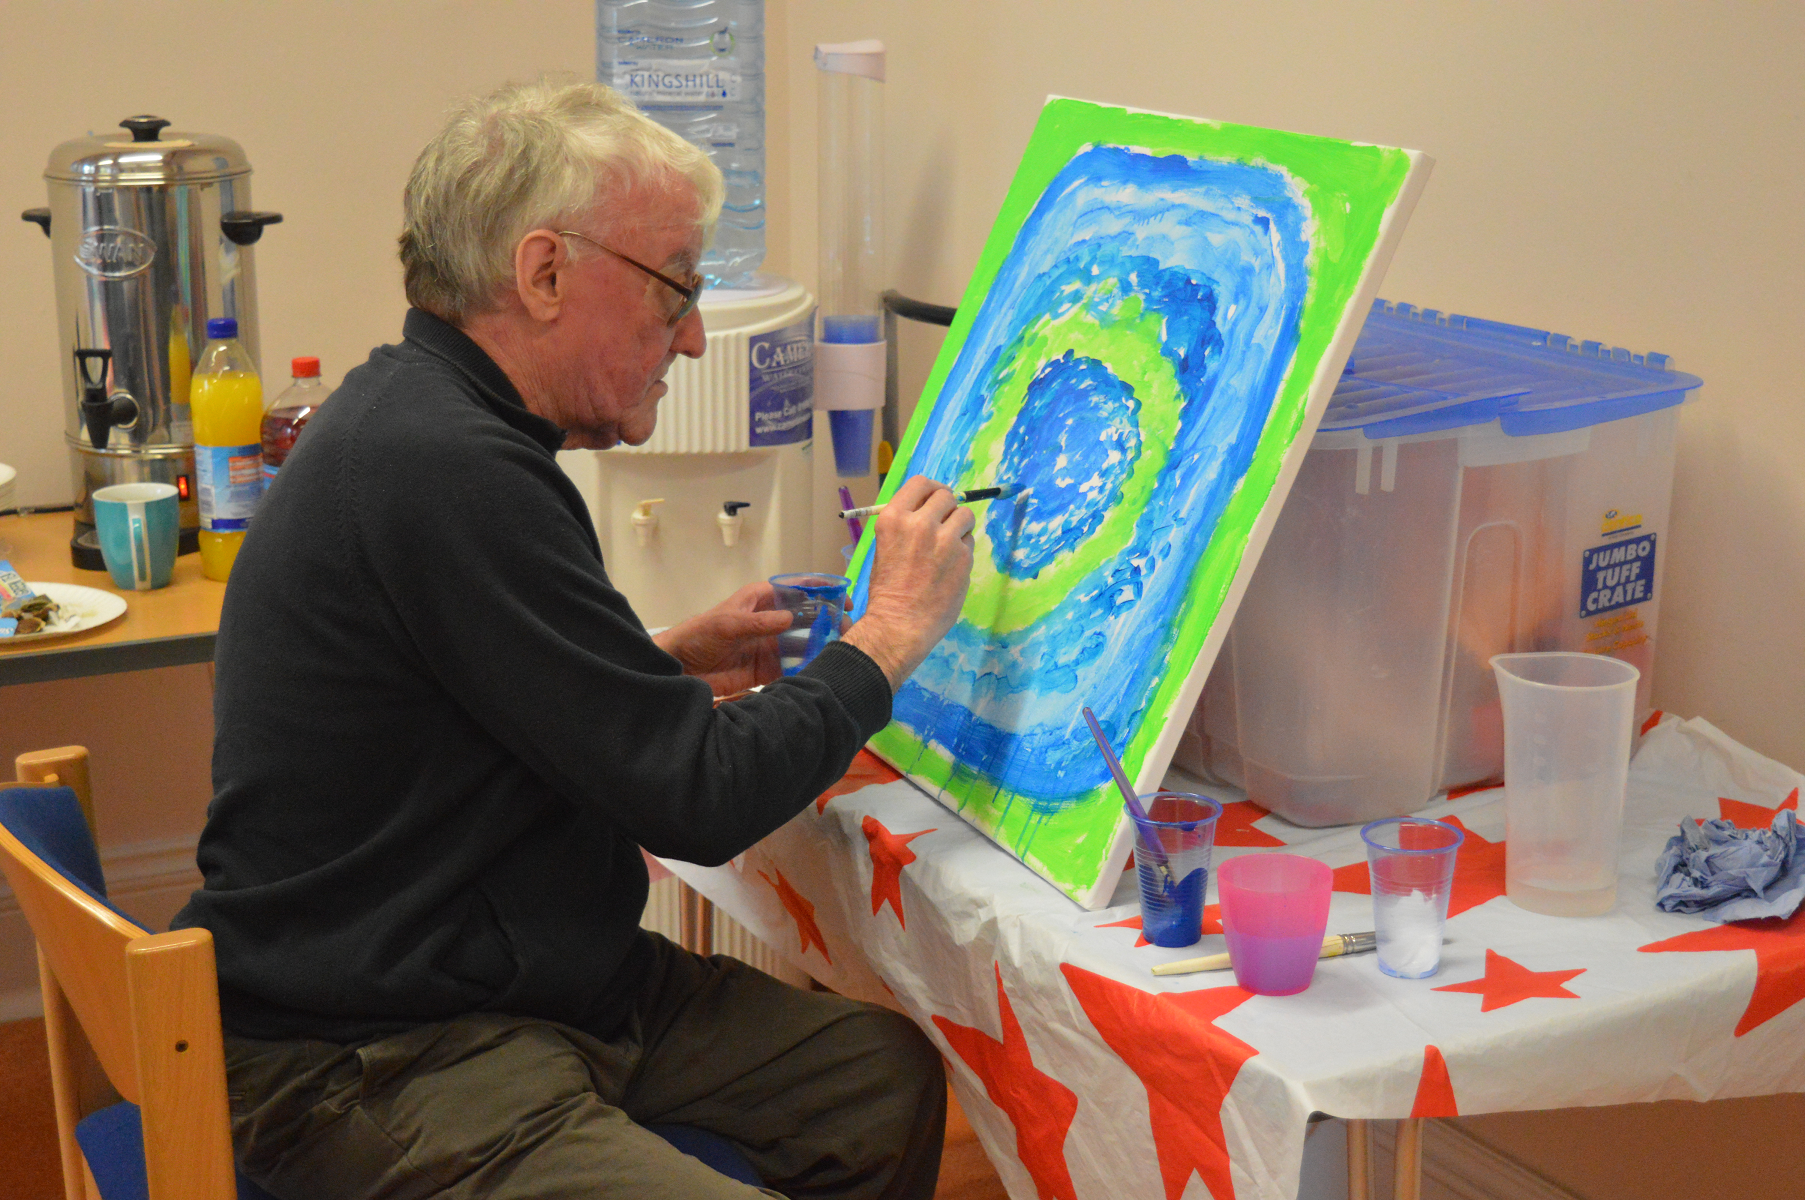 A man with glasses painting a canvas with green and blue paint